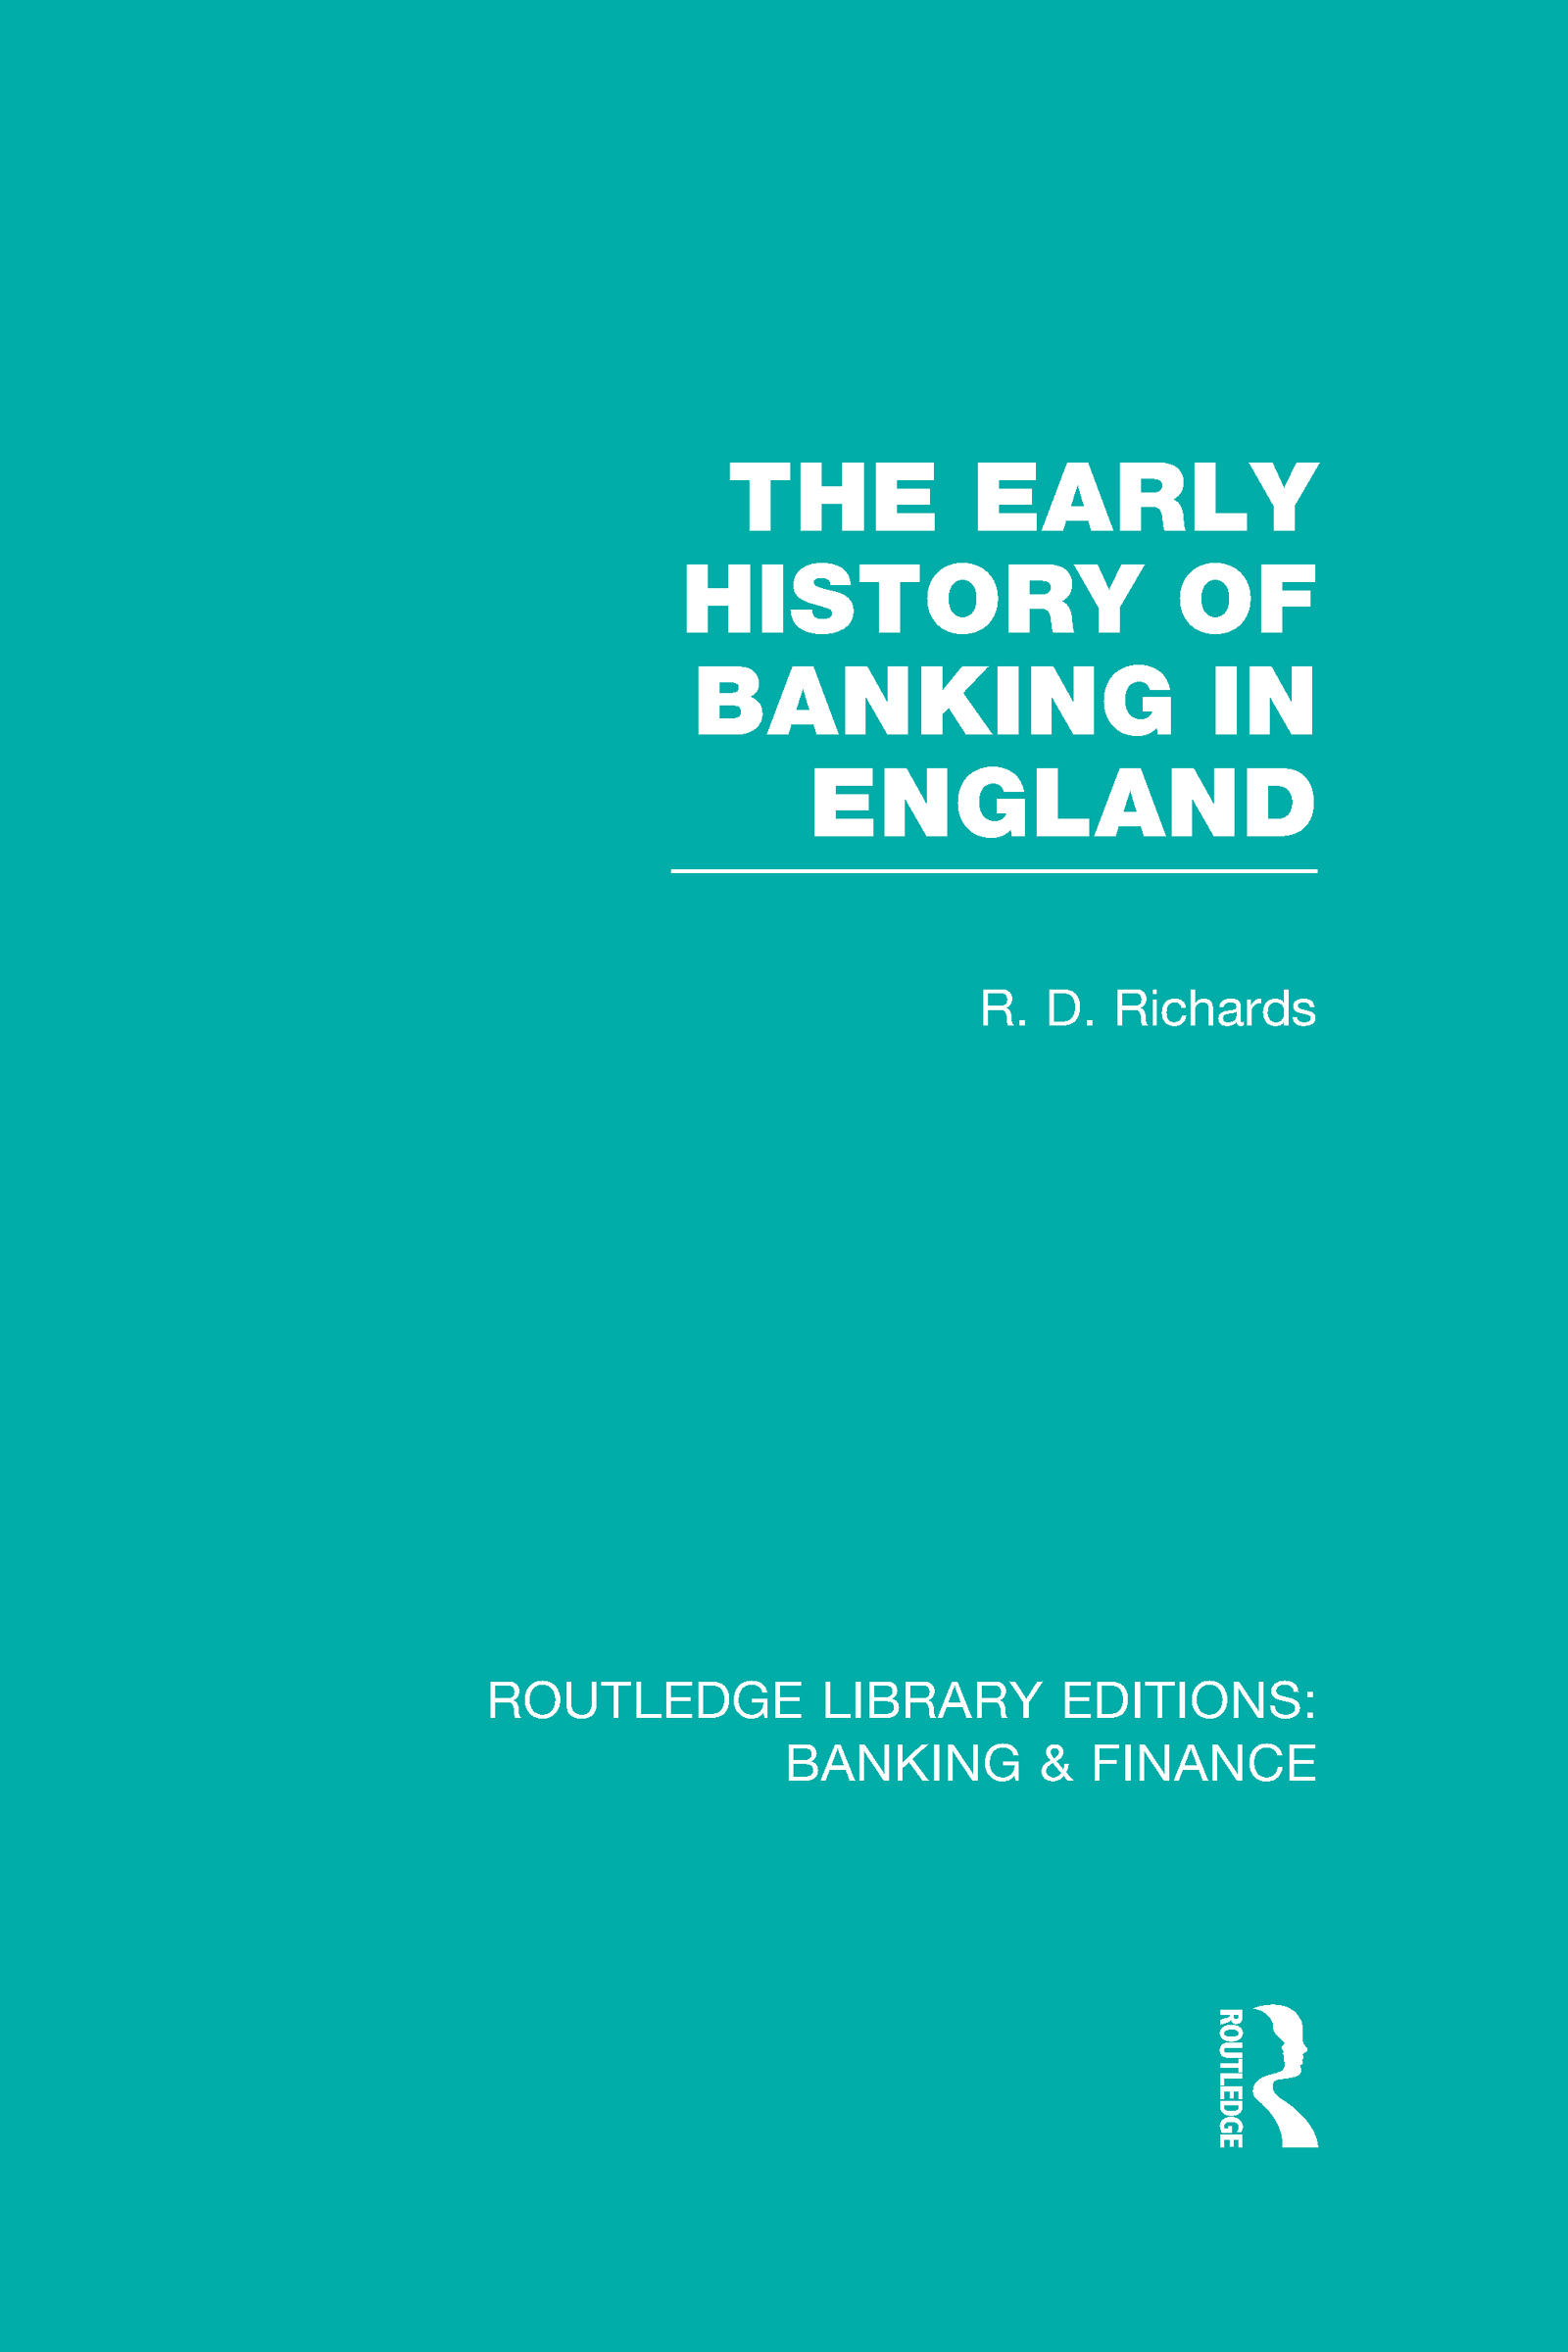 The Early History of Banking in England (RLE Banking & Finance) (Hardback) book cover